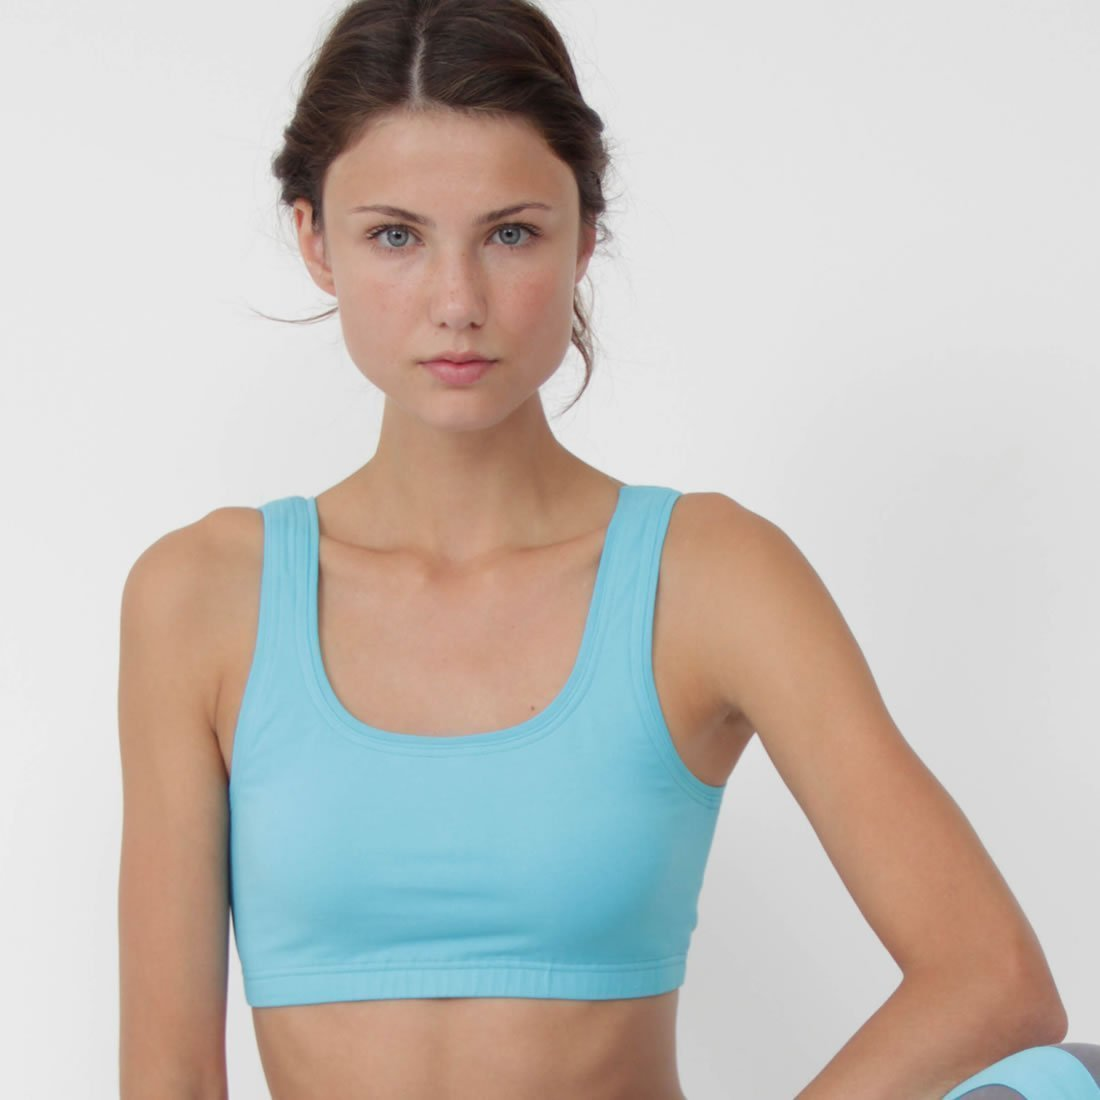 634d4fe42 Figuera Organic Cotton Yoga Sports Bra Turquoise by Prancing Leopard